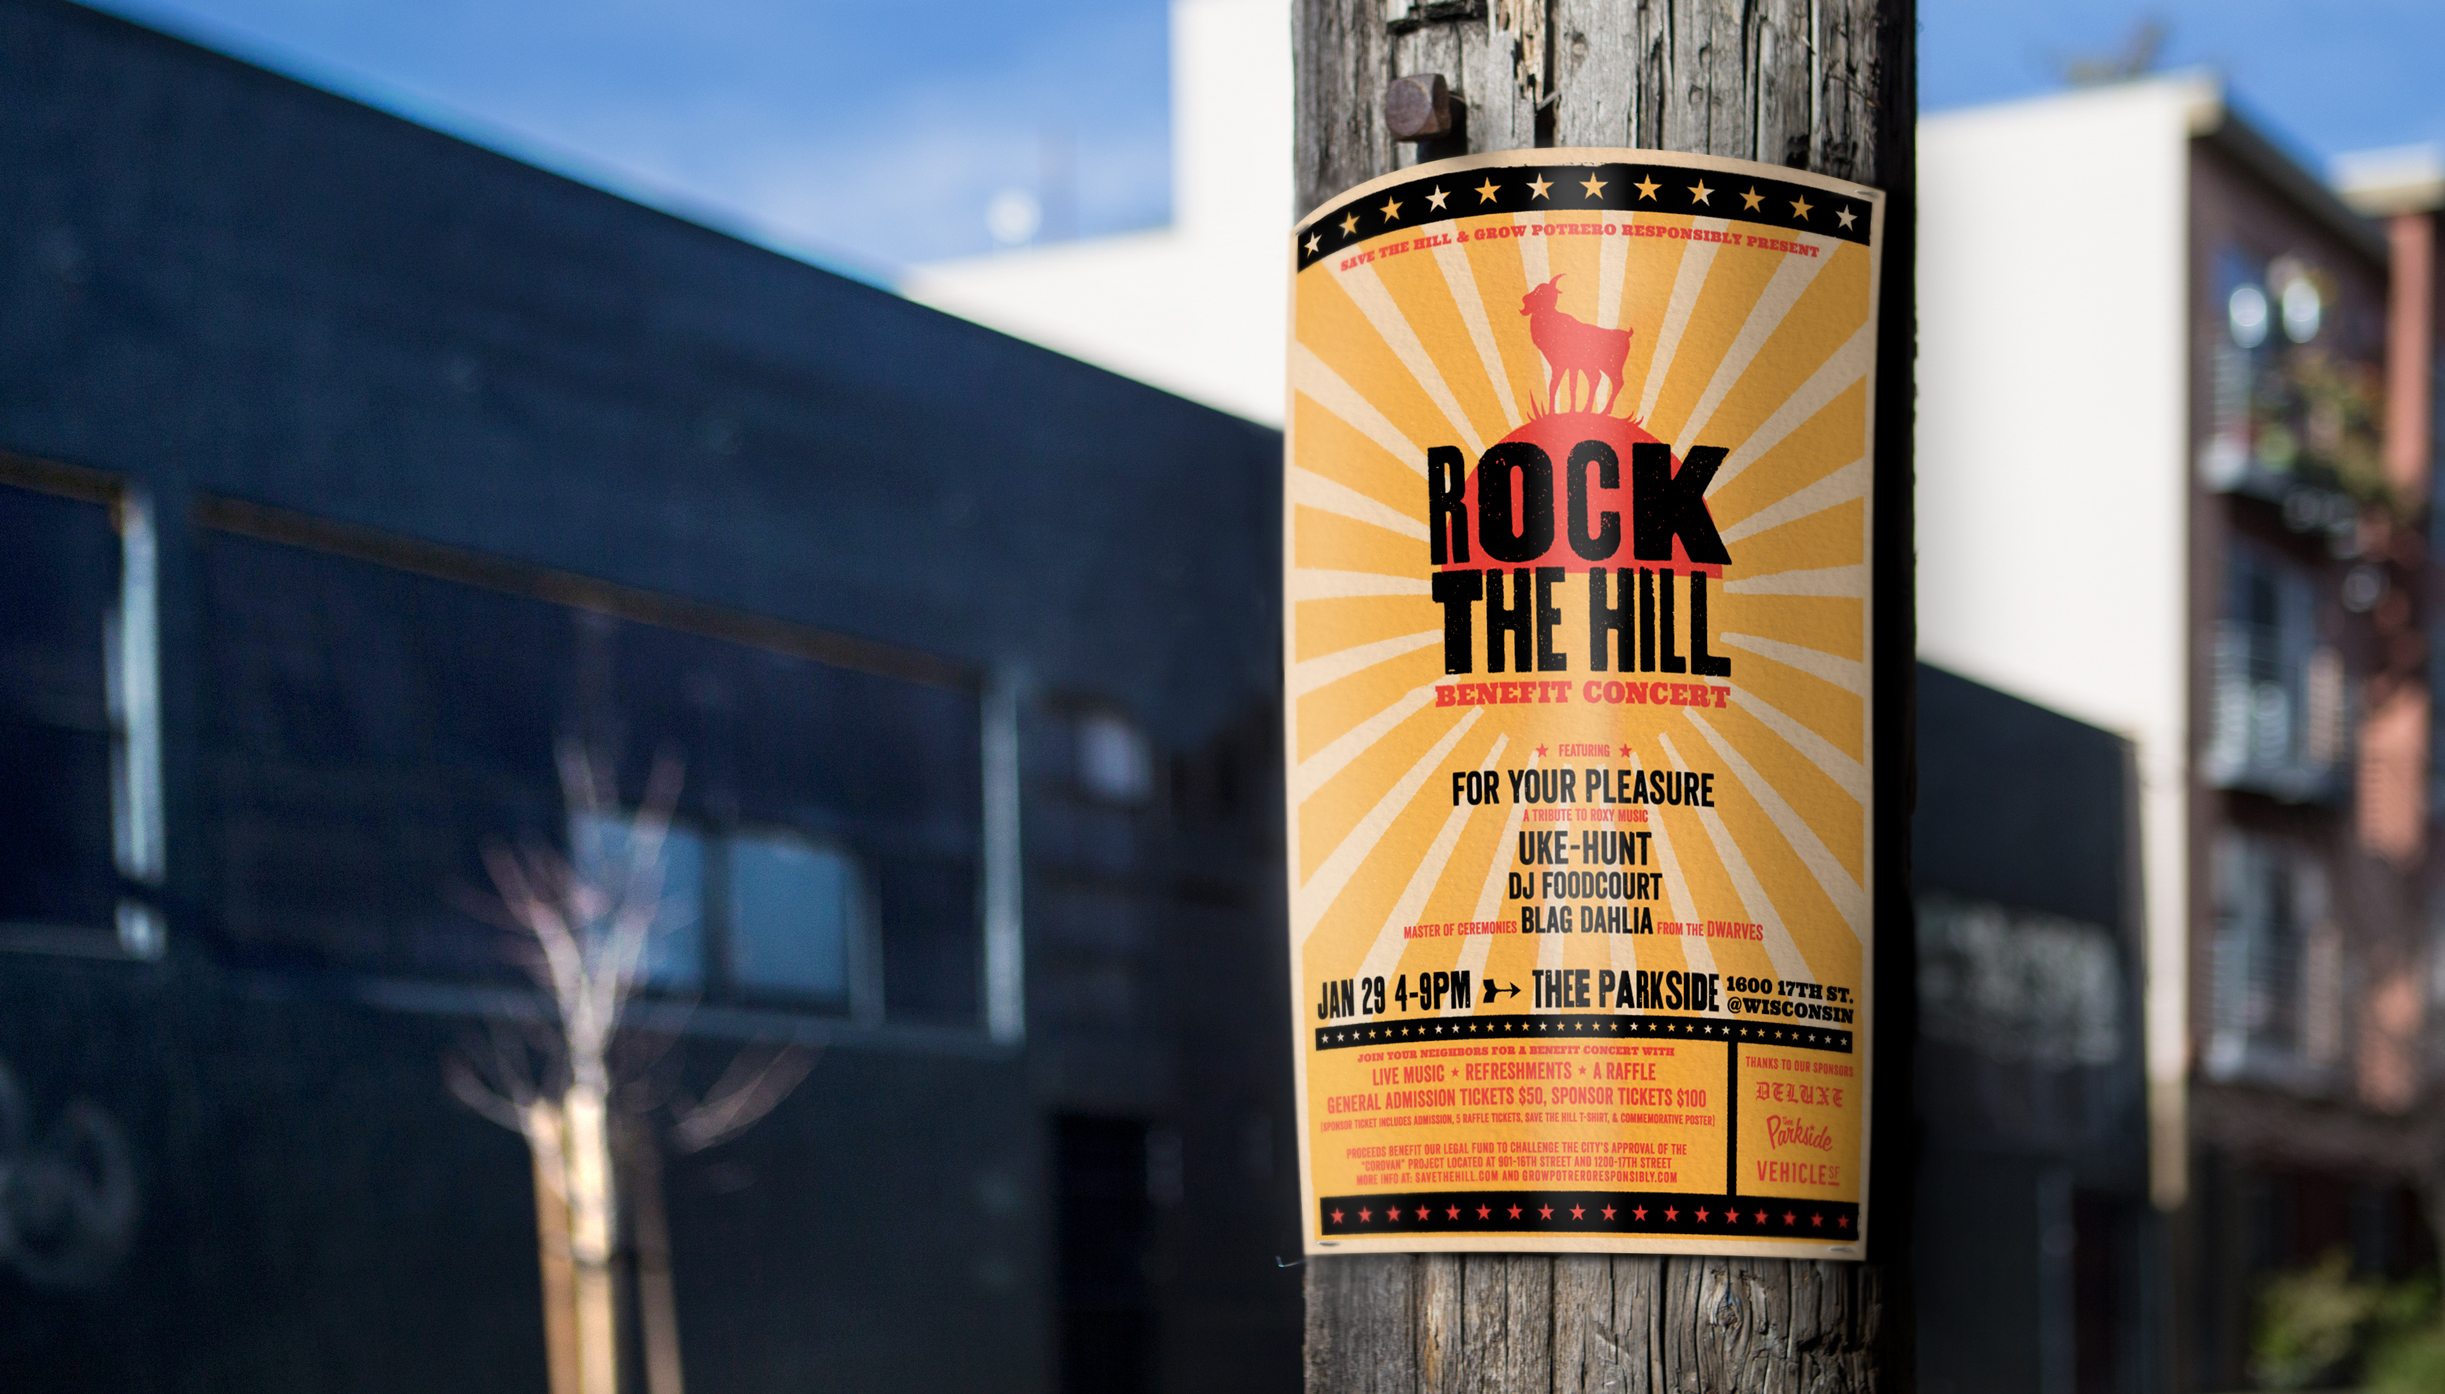 Rock the hill benefit concert poster stabled to telephone poll